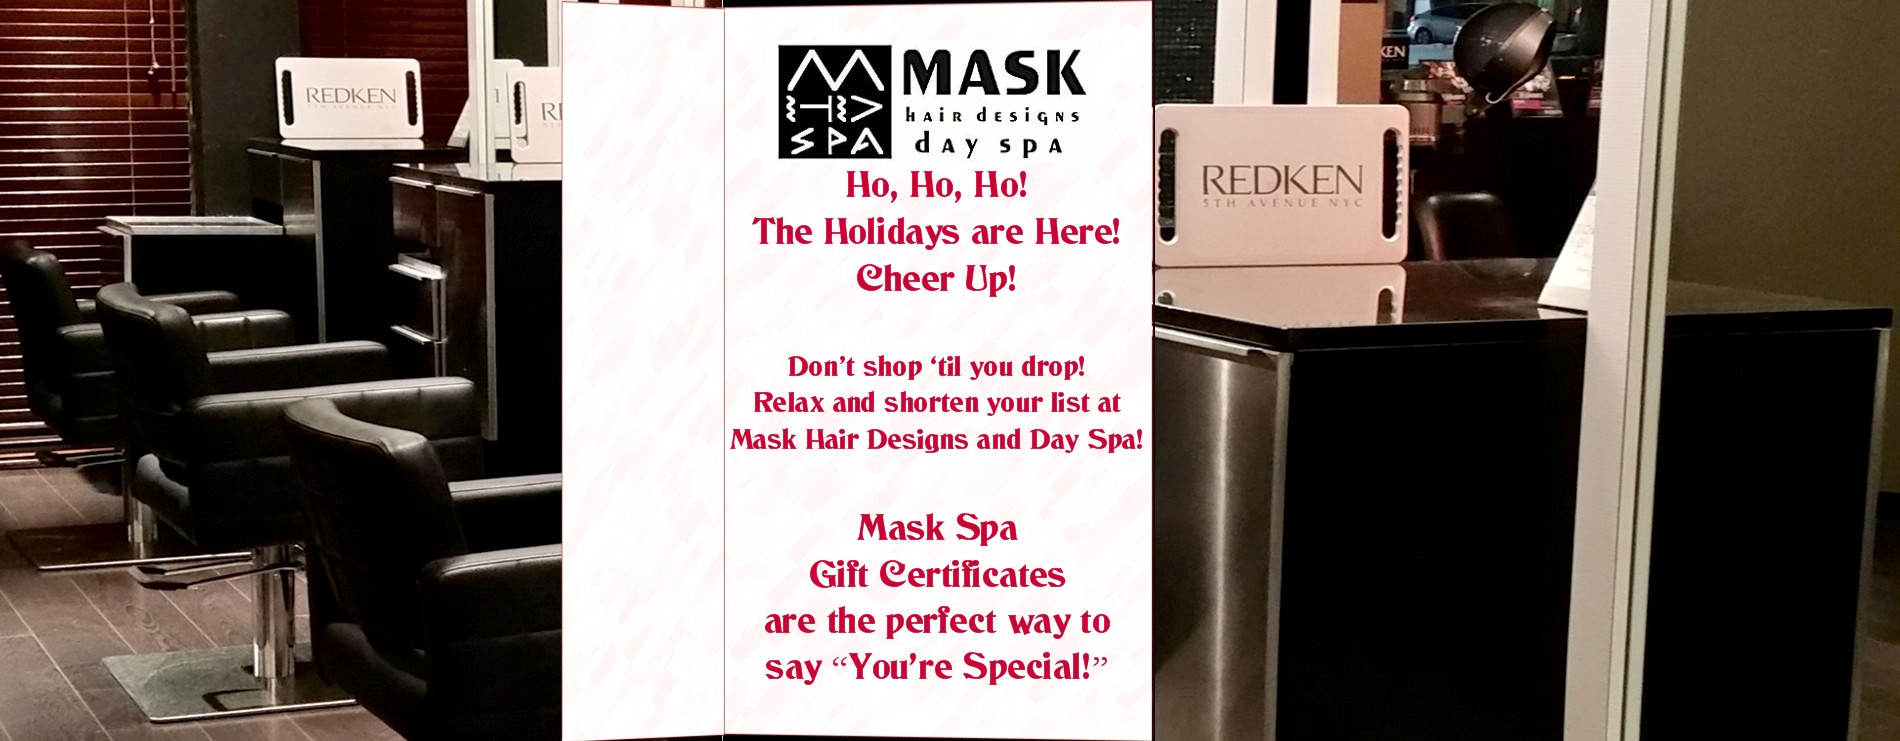 Gift Certificates are the Perfect Gift!